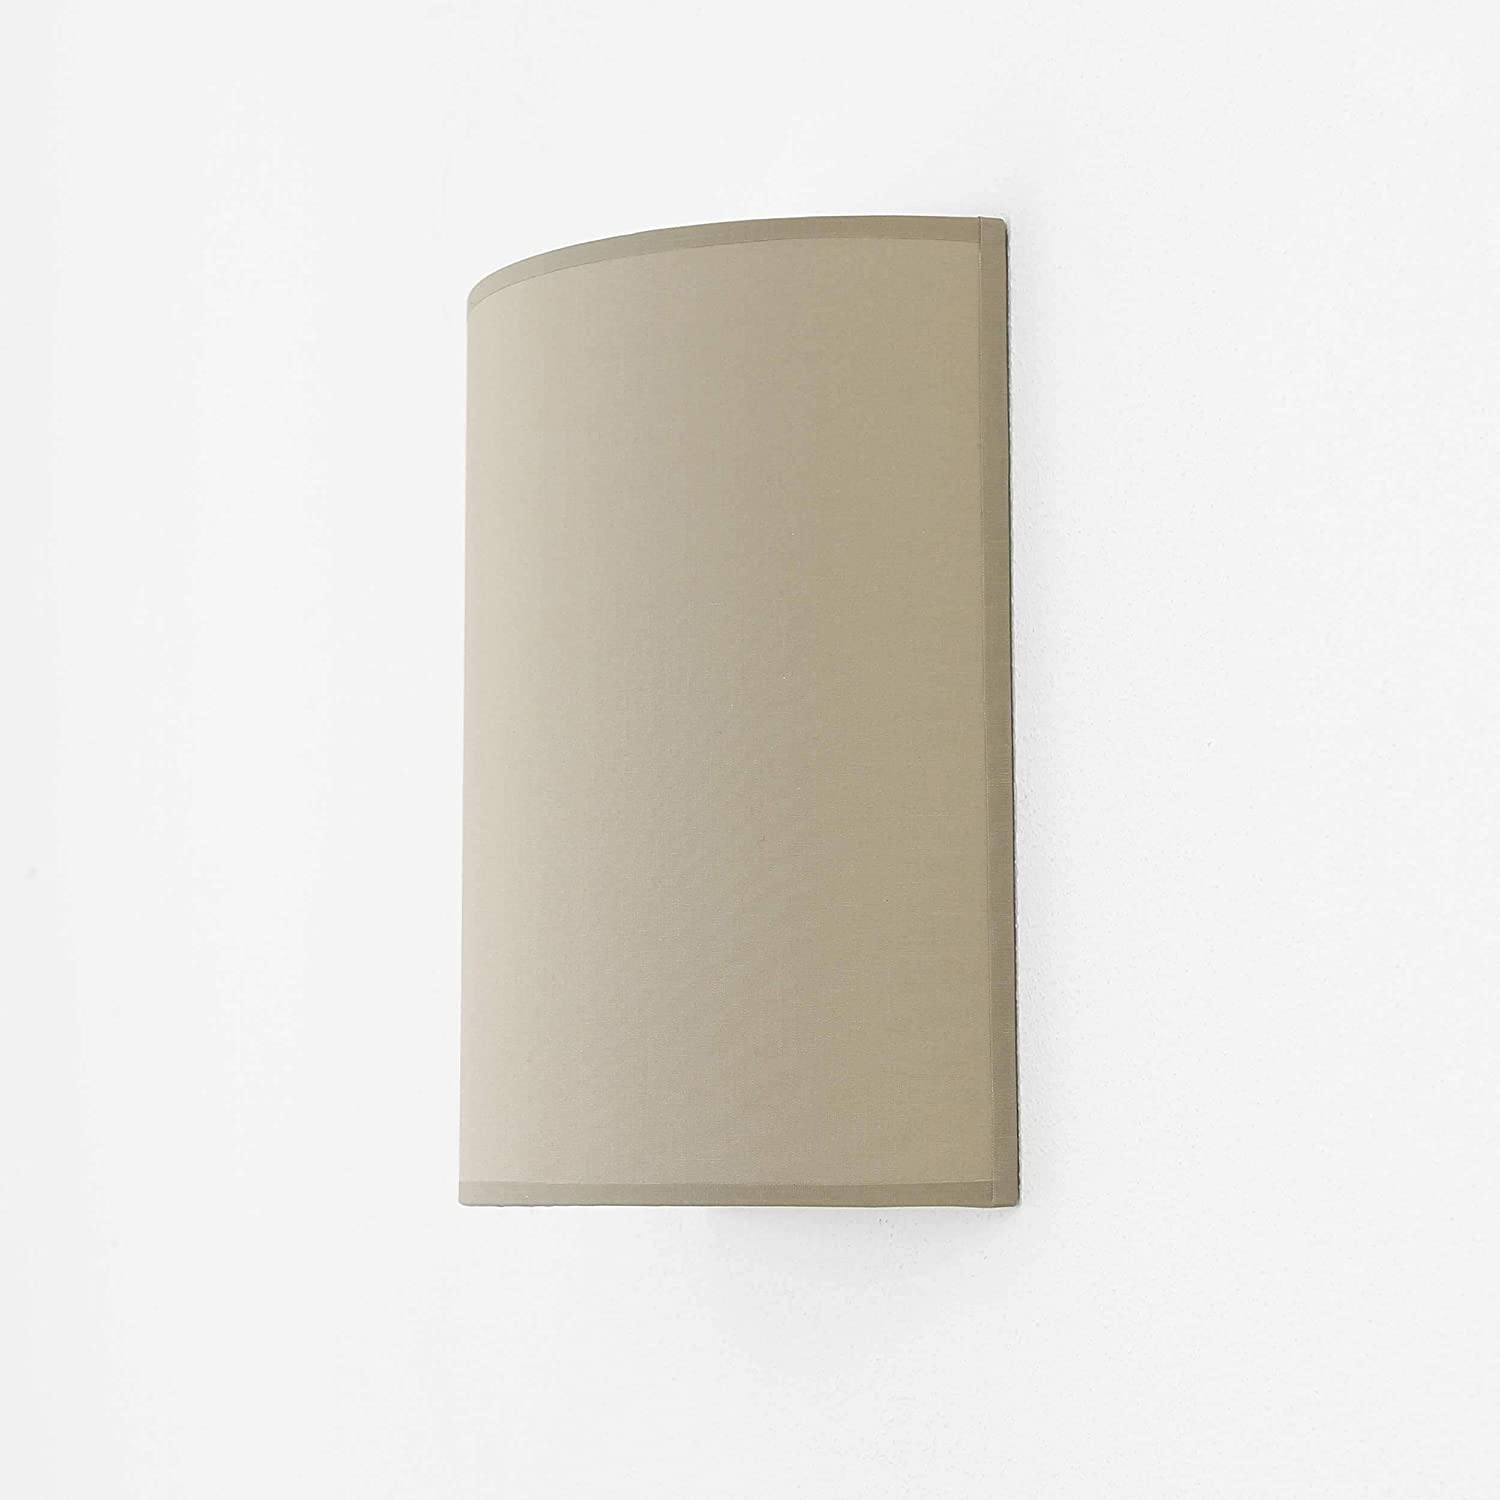 60W 230V Wall lamp Compact Inside//Lighting Living Room Bedroom Wall Light loft//Contemporary Style//Brown//Fabric Shade 1x E27 up to max